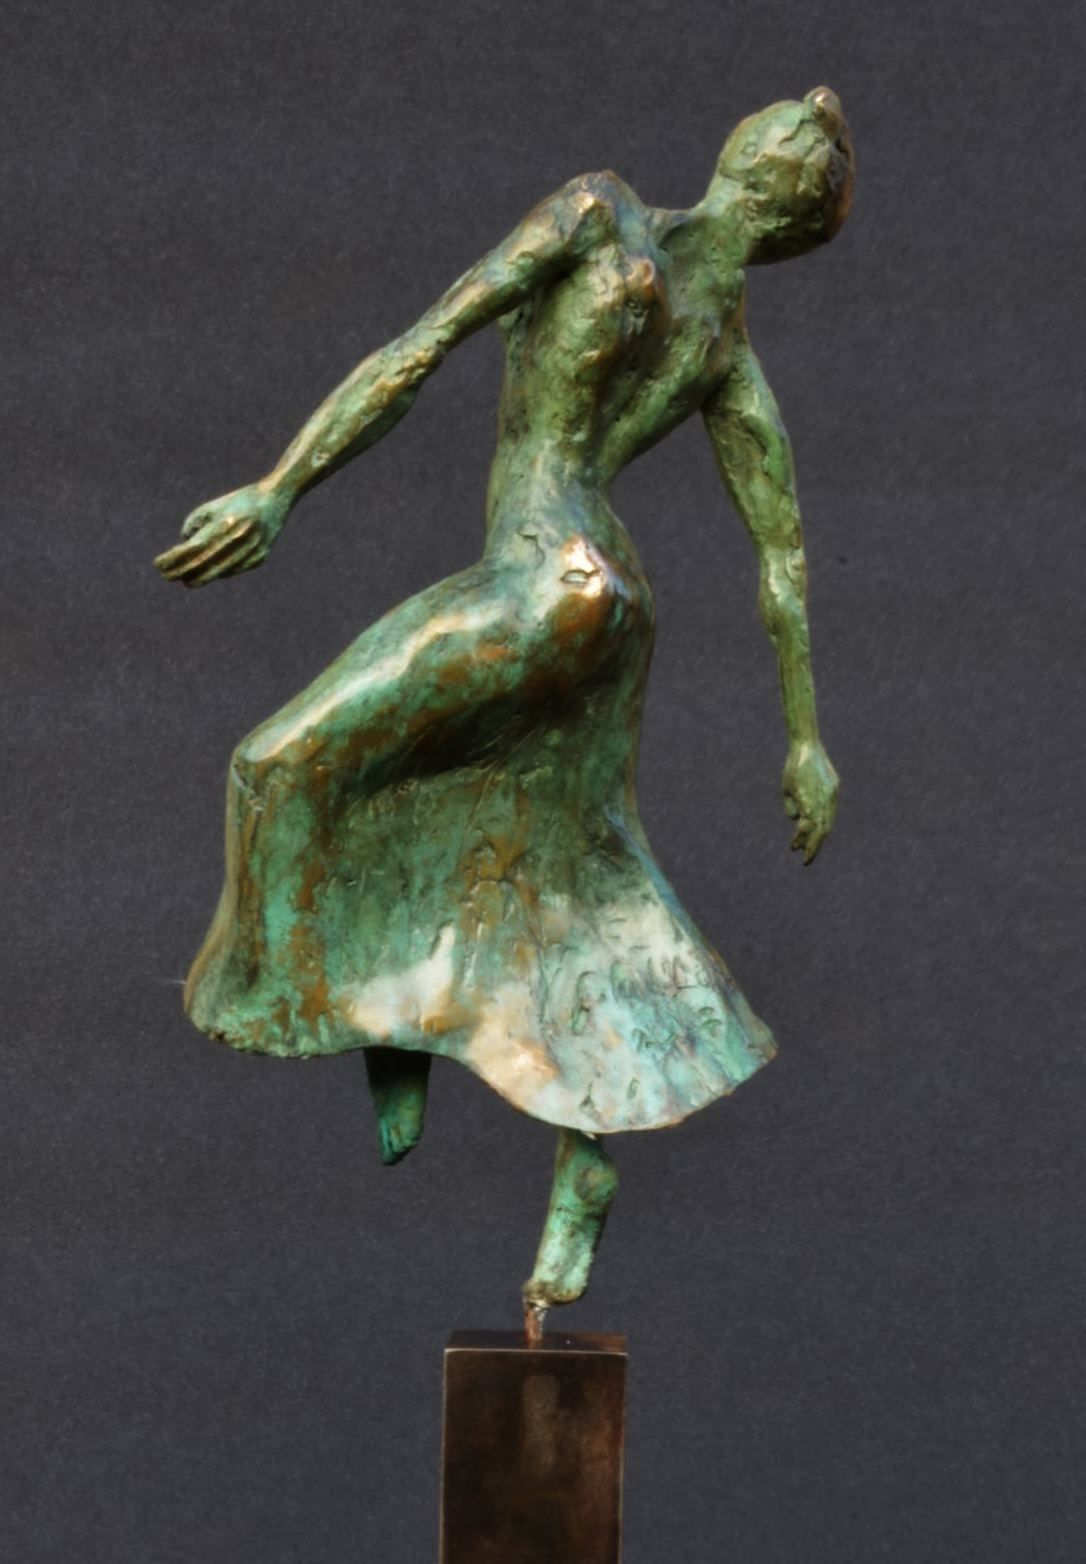 Danseuse moderne II,Yann Guillon,Sculpture, detail 1